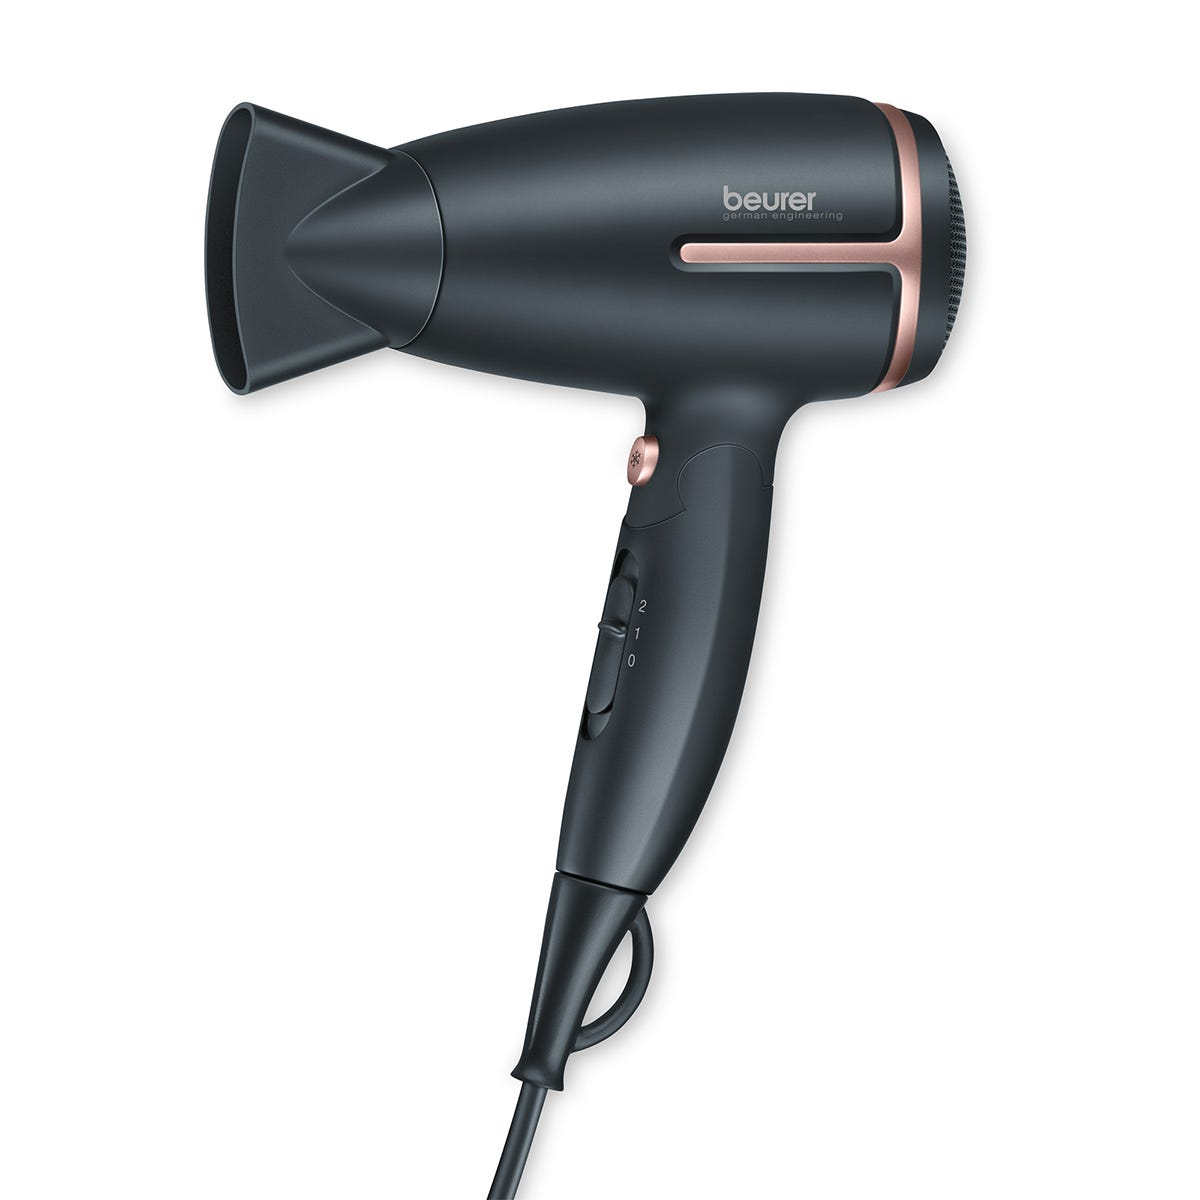 Beurer HC25 Premium Travel 1600W Hair Dryer with Ionic Function - Black/Rose Gold